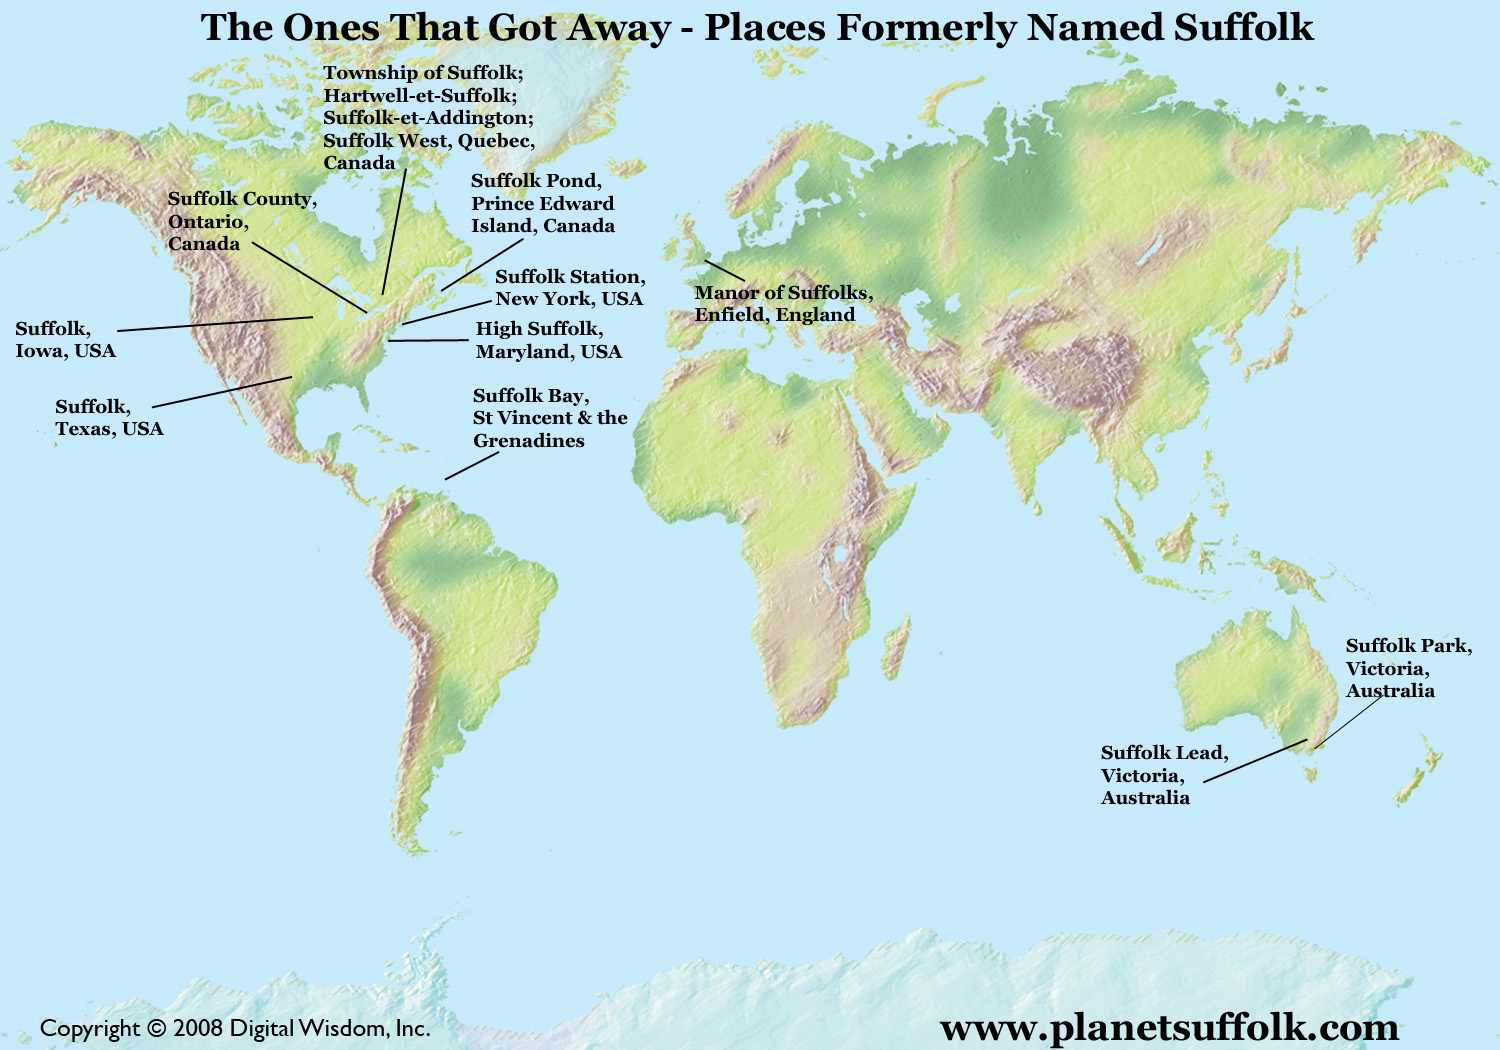 Suffolk County England Map.The Ones That Got Away Planet Suffolk Bringing Together The